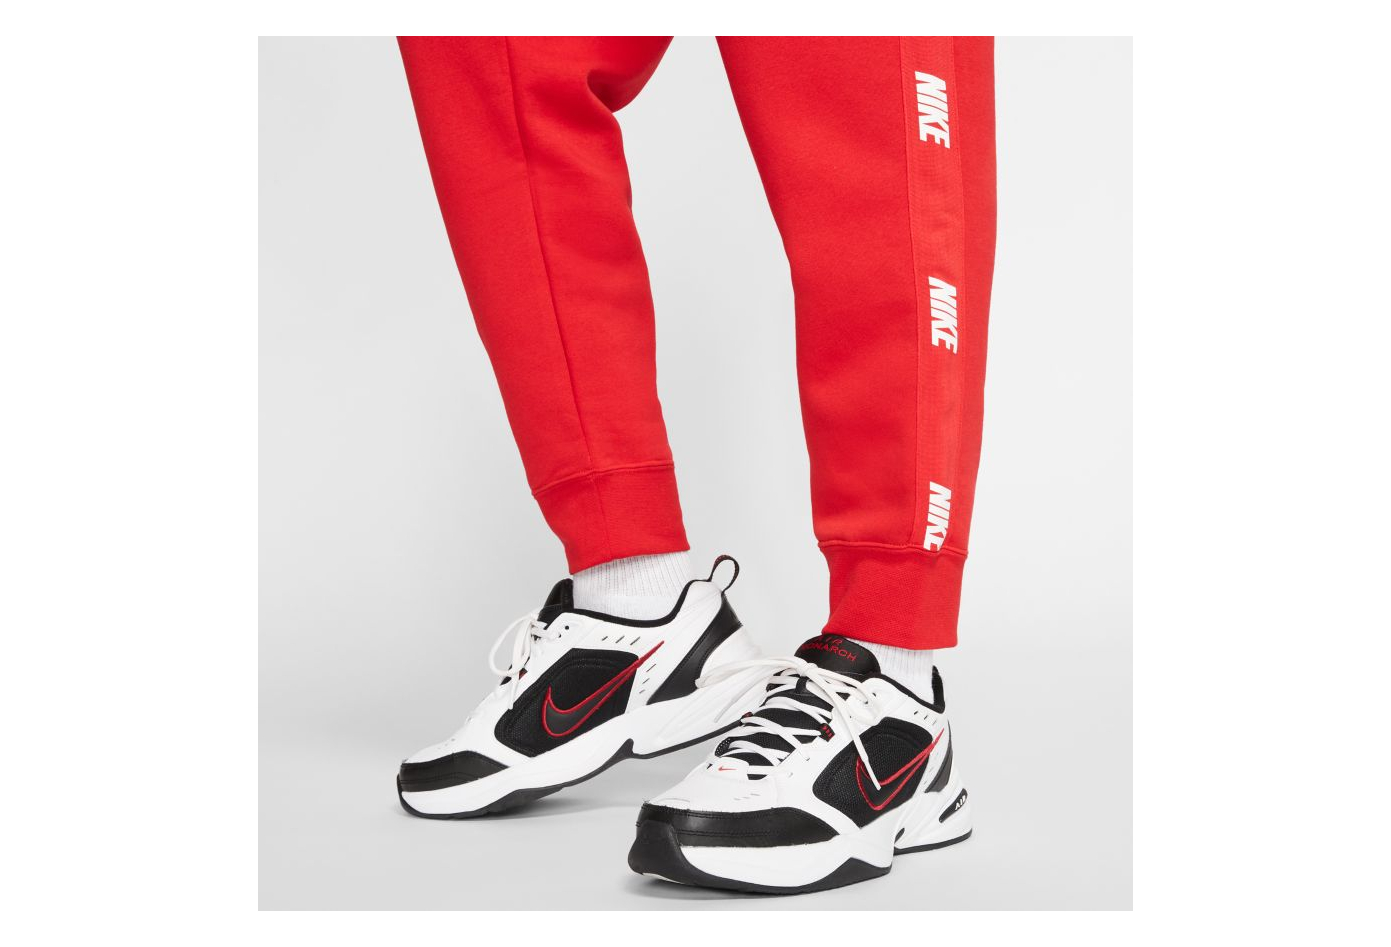 Pantalon Survet Nike Sportswear University Red University Red White L Alltricks Com